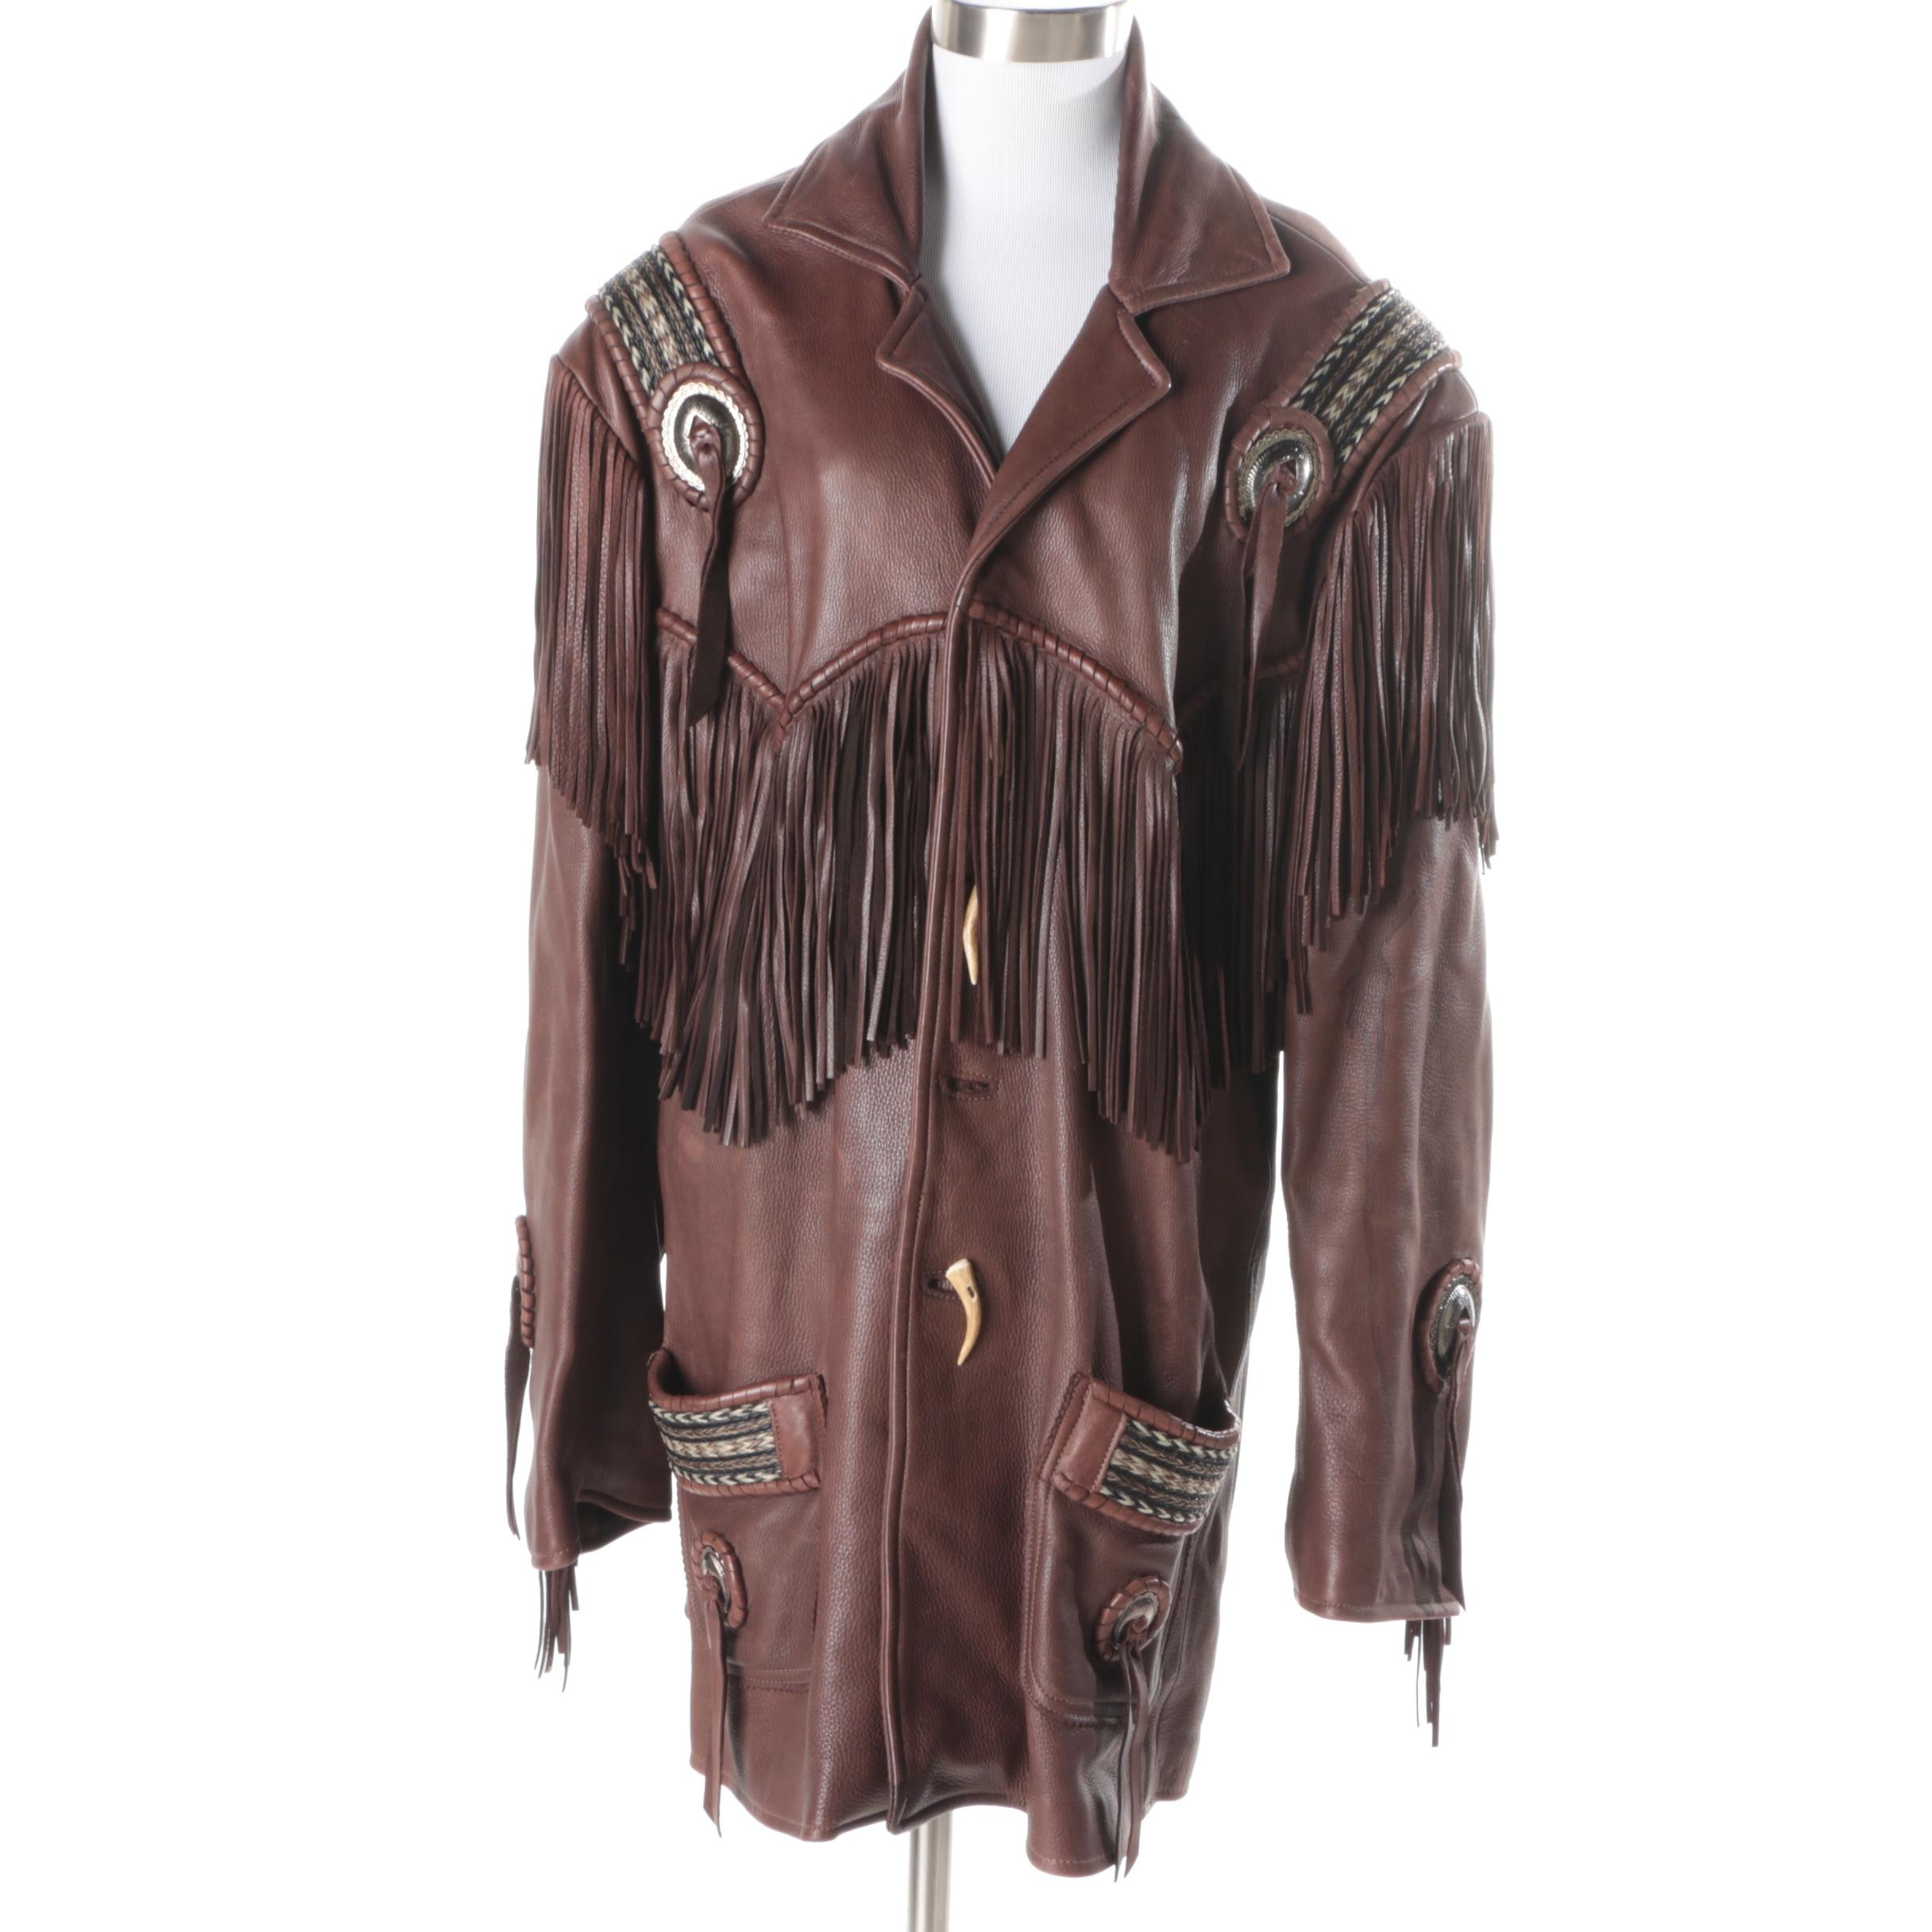 Women's Fringed Leather Jacket